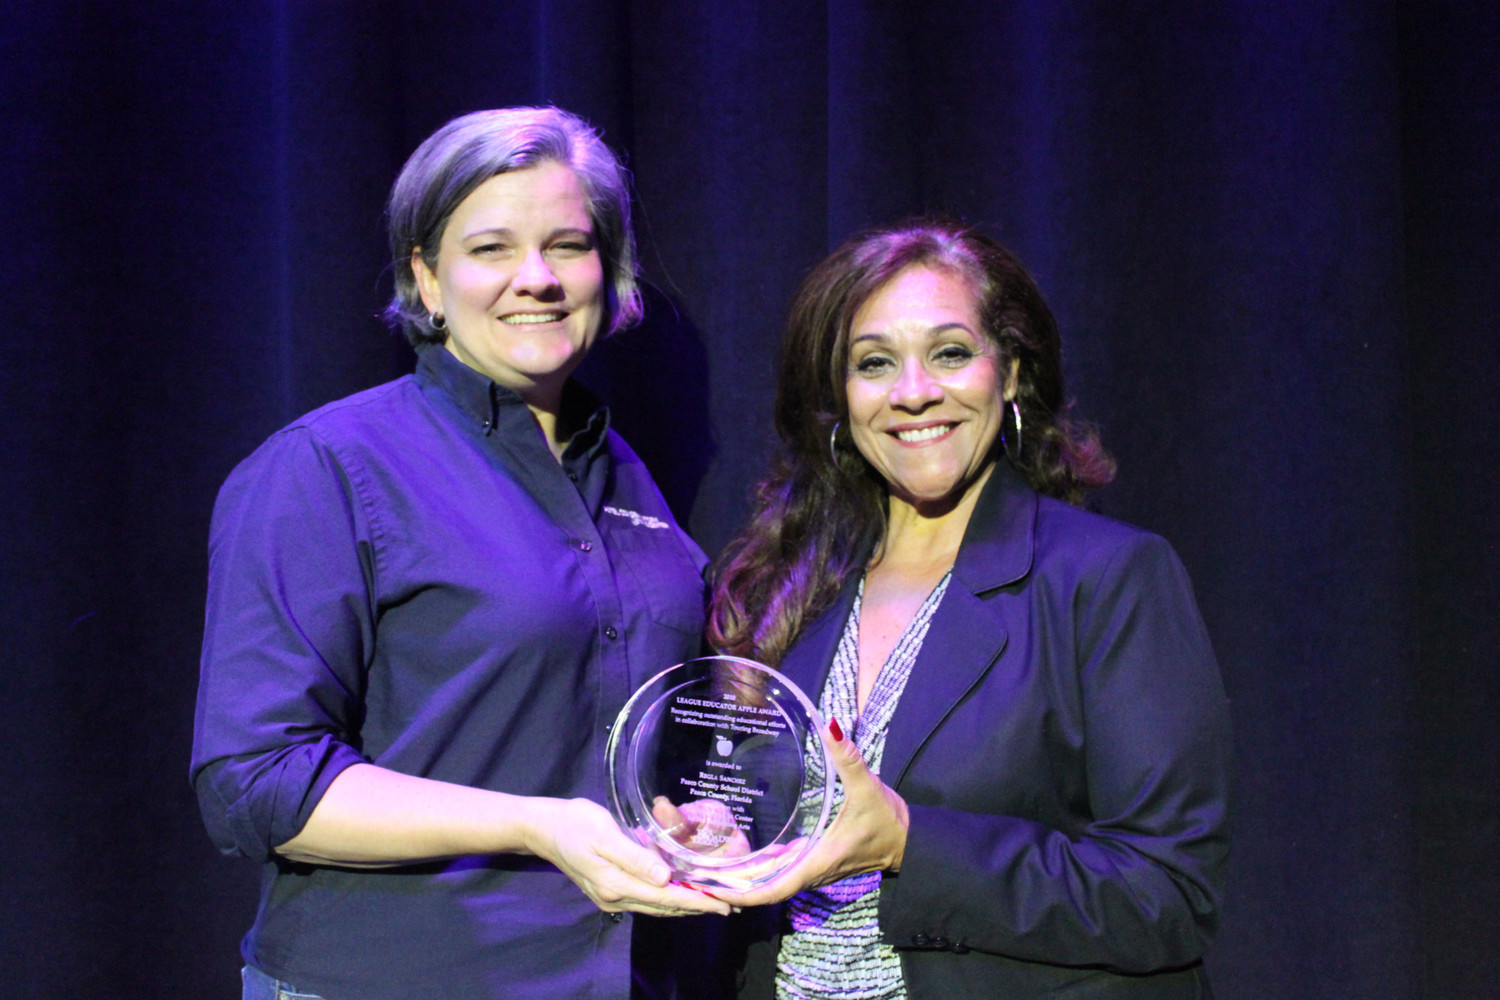 BWW Feature: PASCO COUNTY EDUCATOR WINS NATIONAL BROADWAY LEAGUE AWARD THROUGH NOMINATION  by The Straz Center